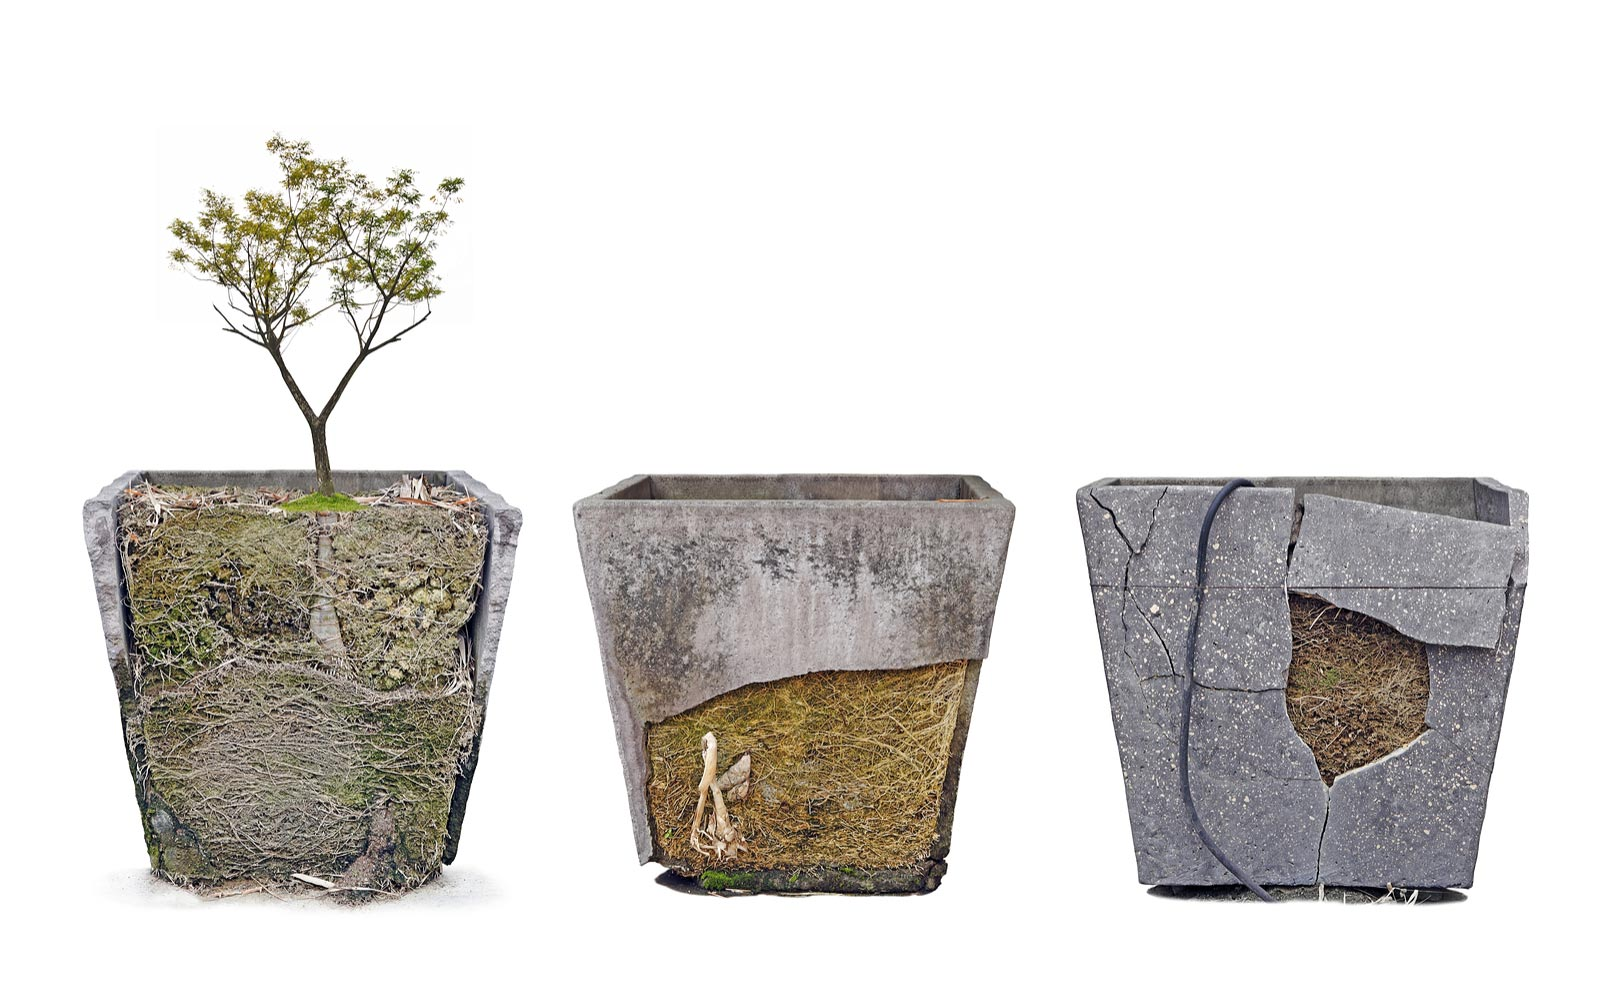 Are Concrete Planters Sustainable